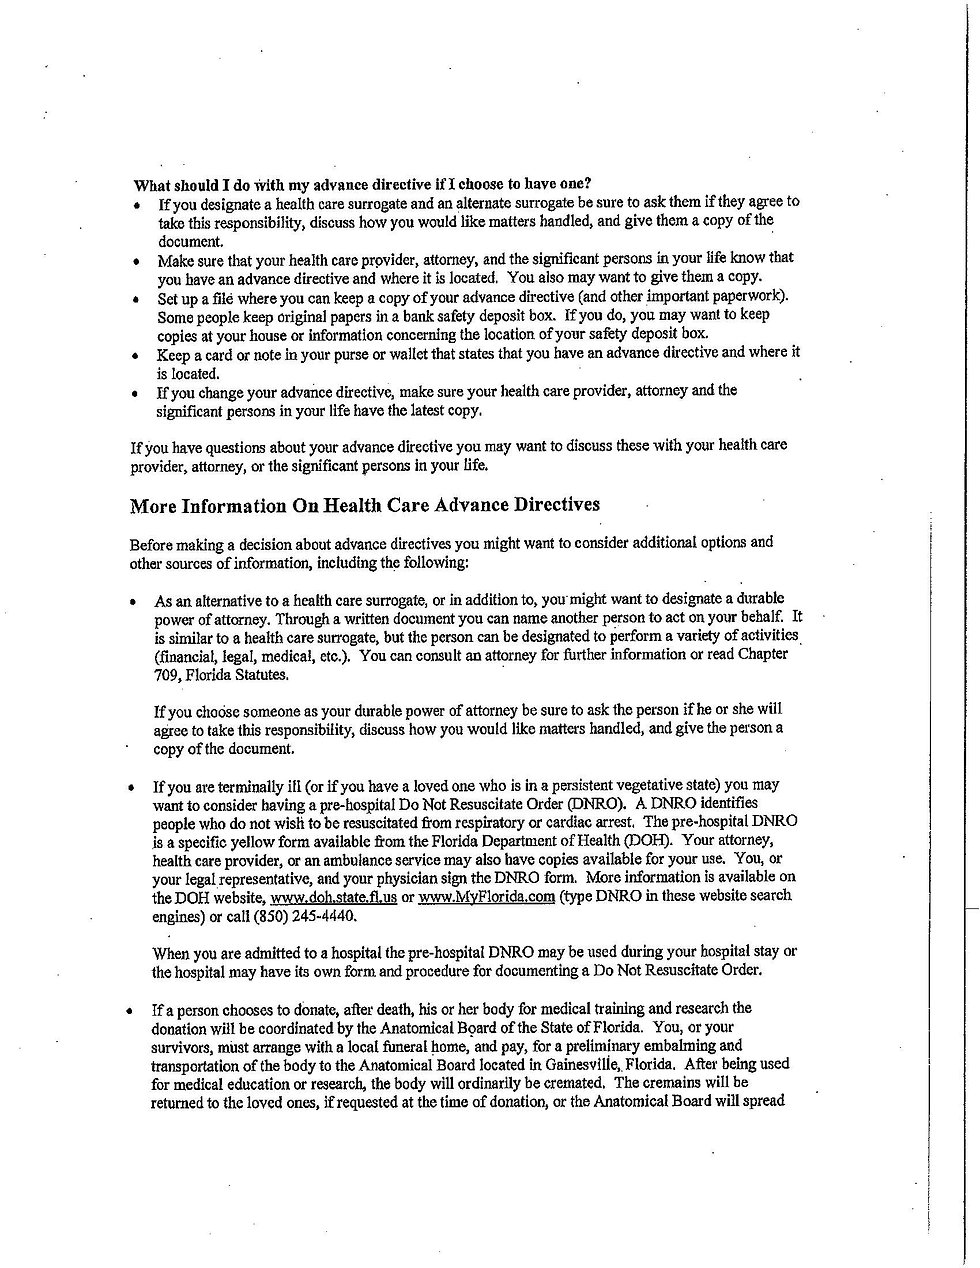 health care advance directives_Page_3.jp